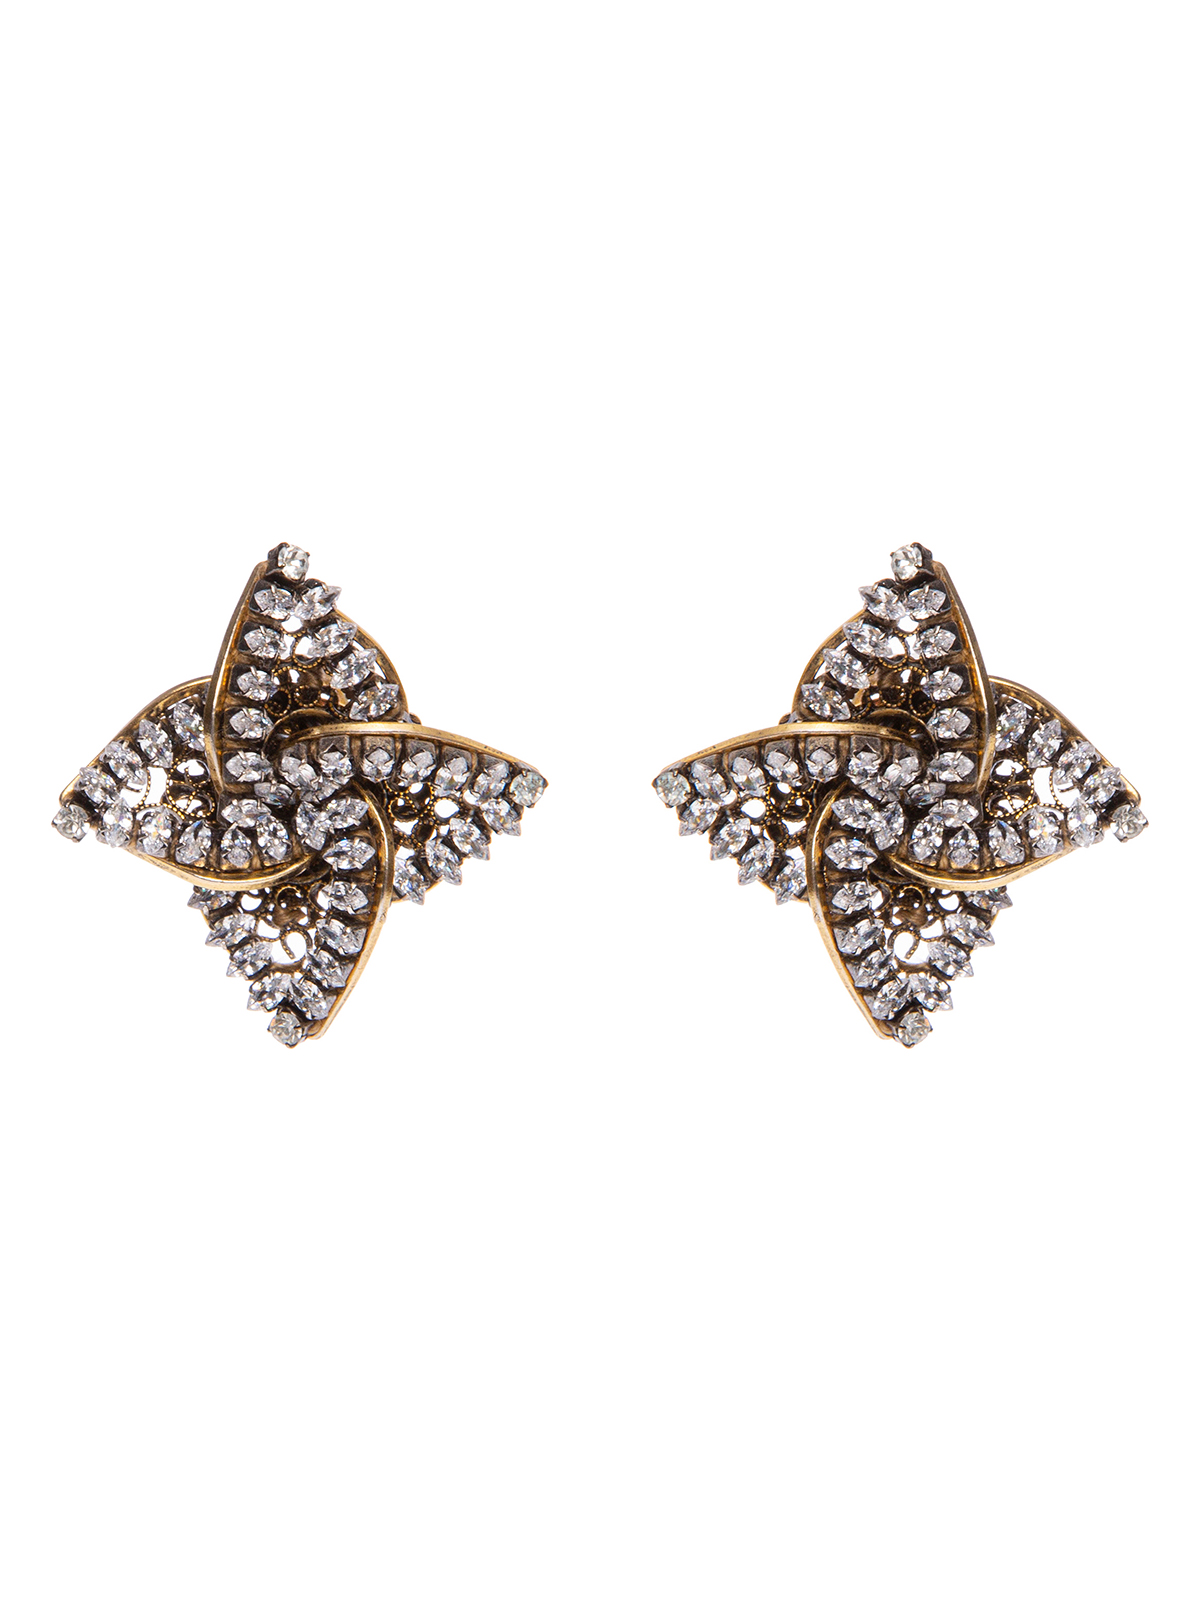 Earrings with  jewel helix-shaped decoration